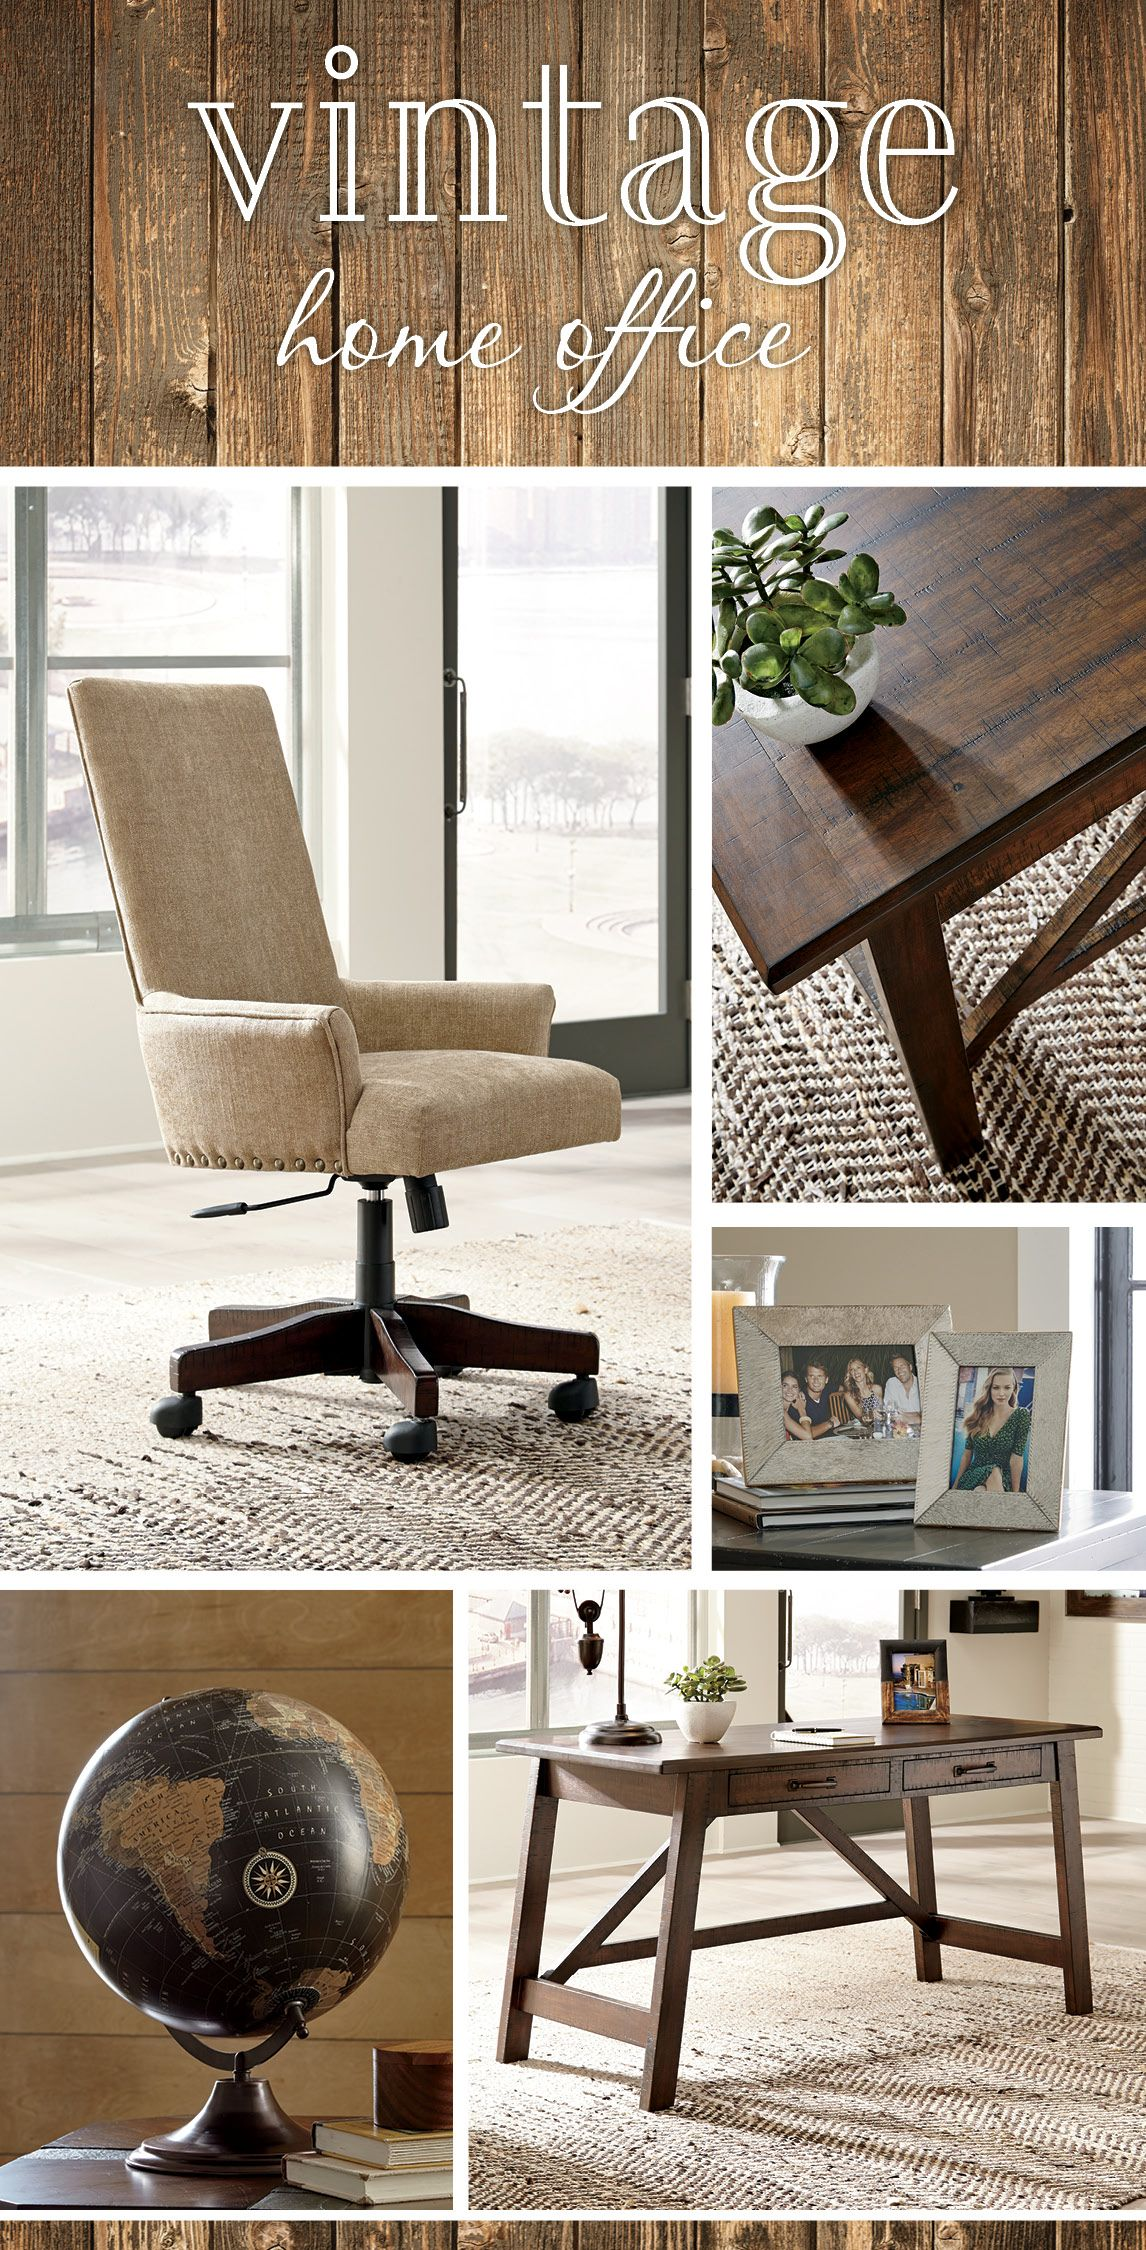 Refreshed And Ready To Work Mjmfurniture Surrey Coquitlam Vancouver Furniture Des Home Office Desks Home Office Furniture Office Furniture Set